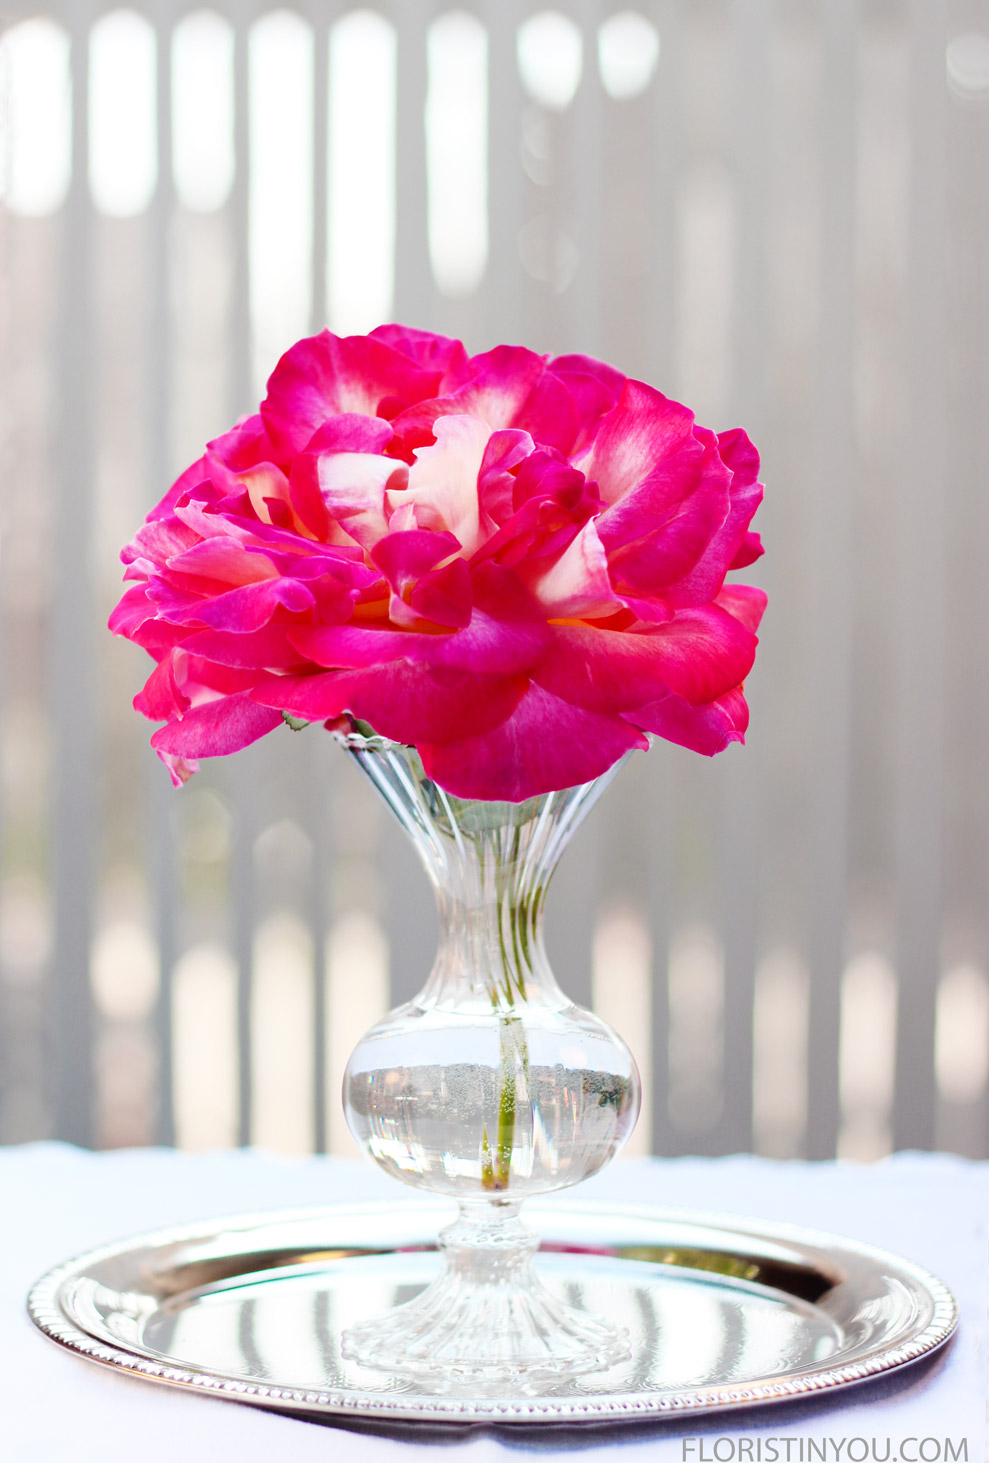 Put the rose in the bud vase, and put them on a silver tray. This tray is 9.75 inches Diam.